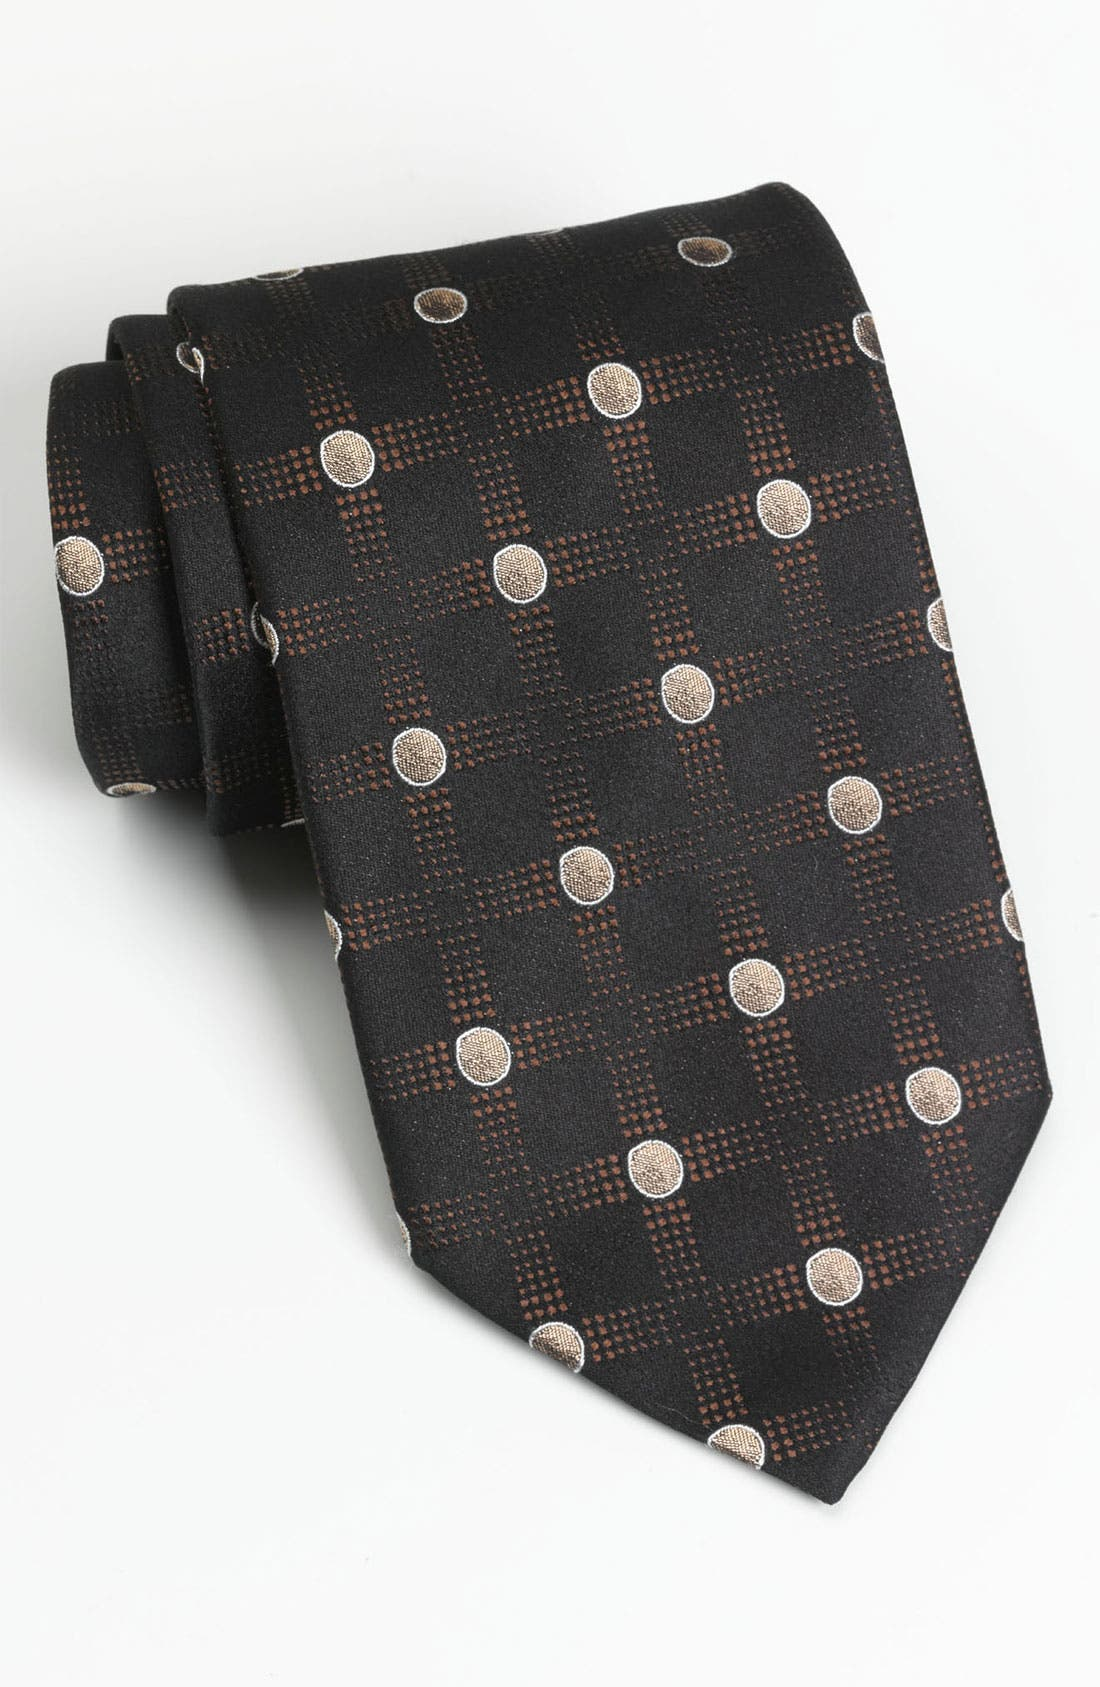 Alternate Image 1 Selected - BOSS Black Woven Silk Tie (Online Exclusive)